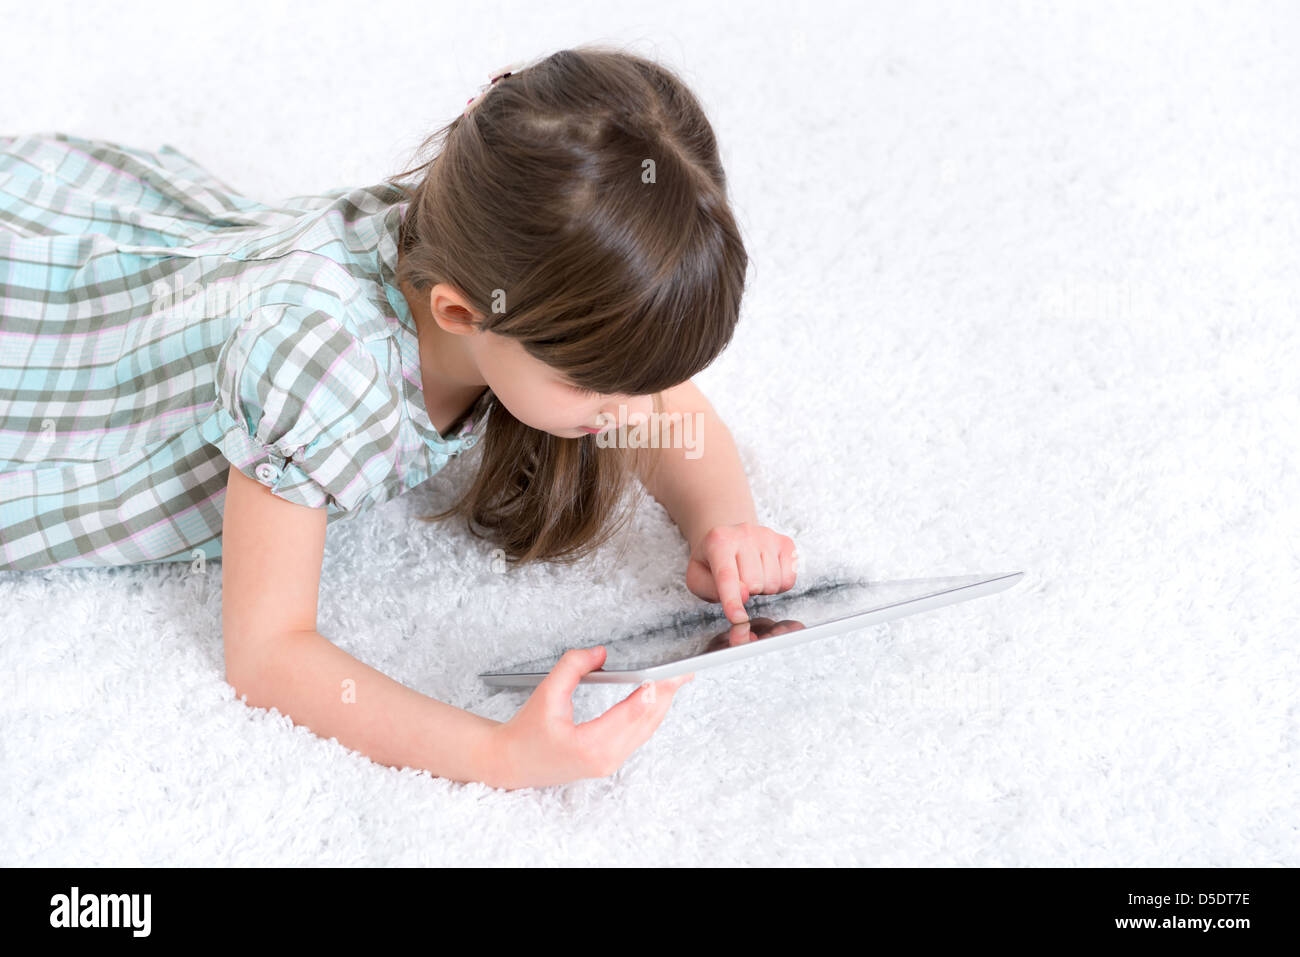 Young girl (6-7 year) looking and playing with digital tablet in a white room. - Stock Image